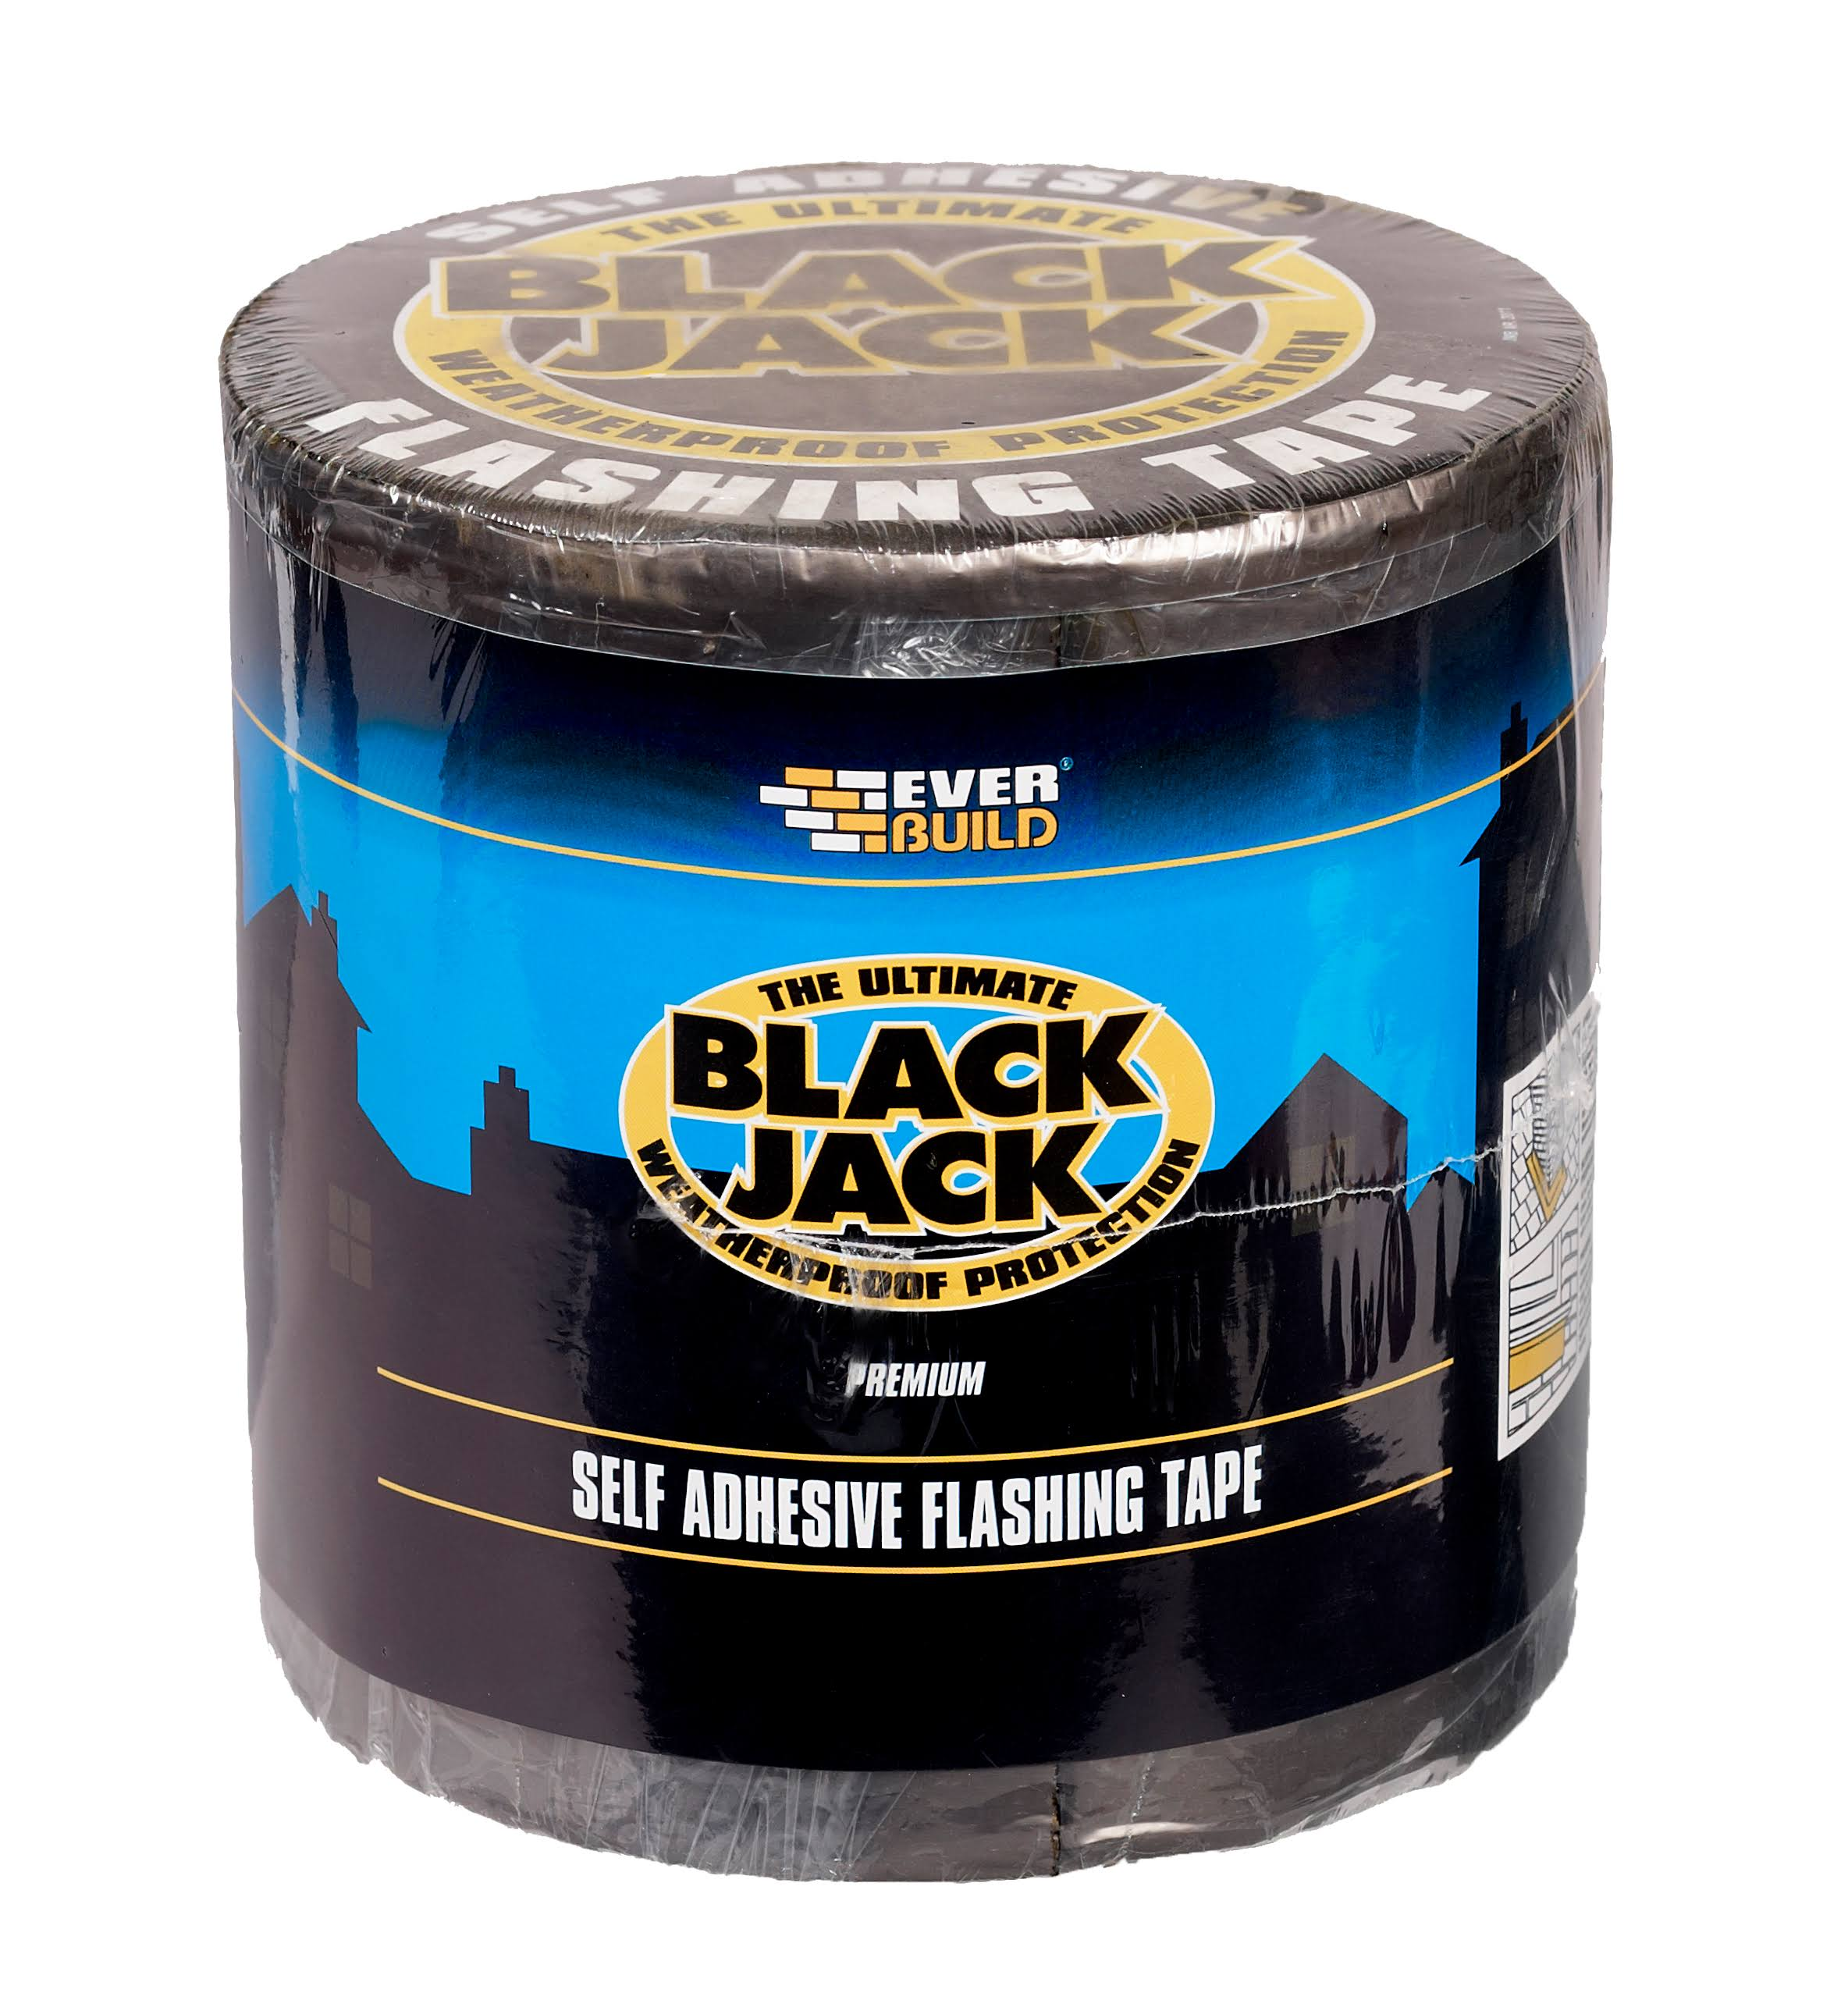 Everbuild Black Jack Self Adhesive Premium Flashing Tape - 100mm x 10m